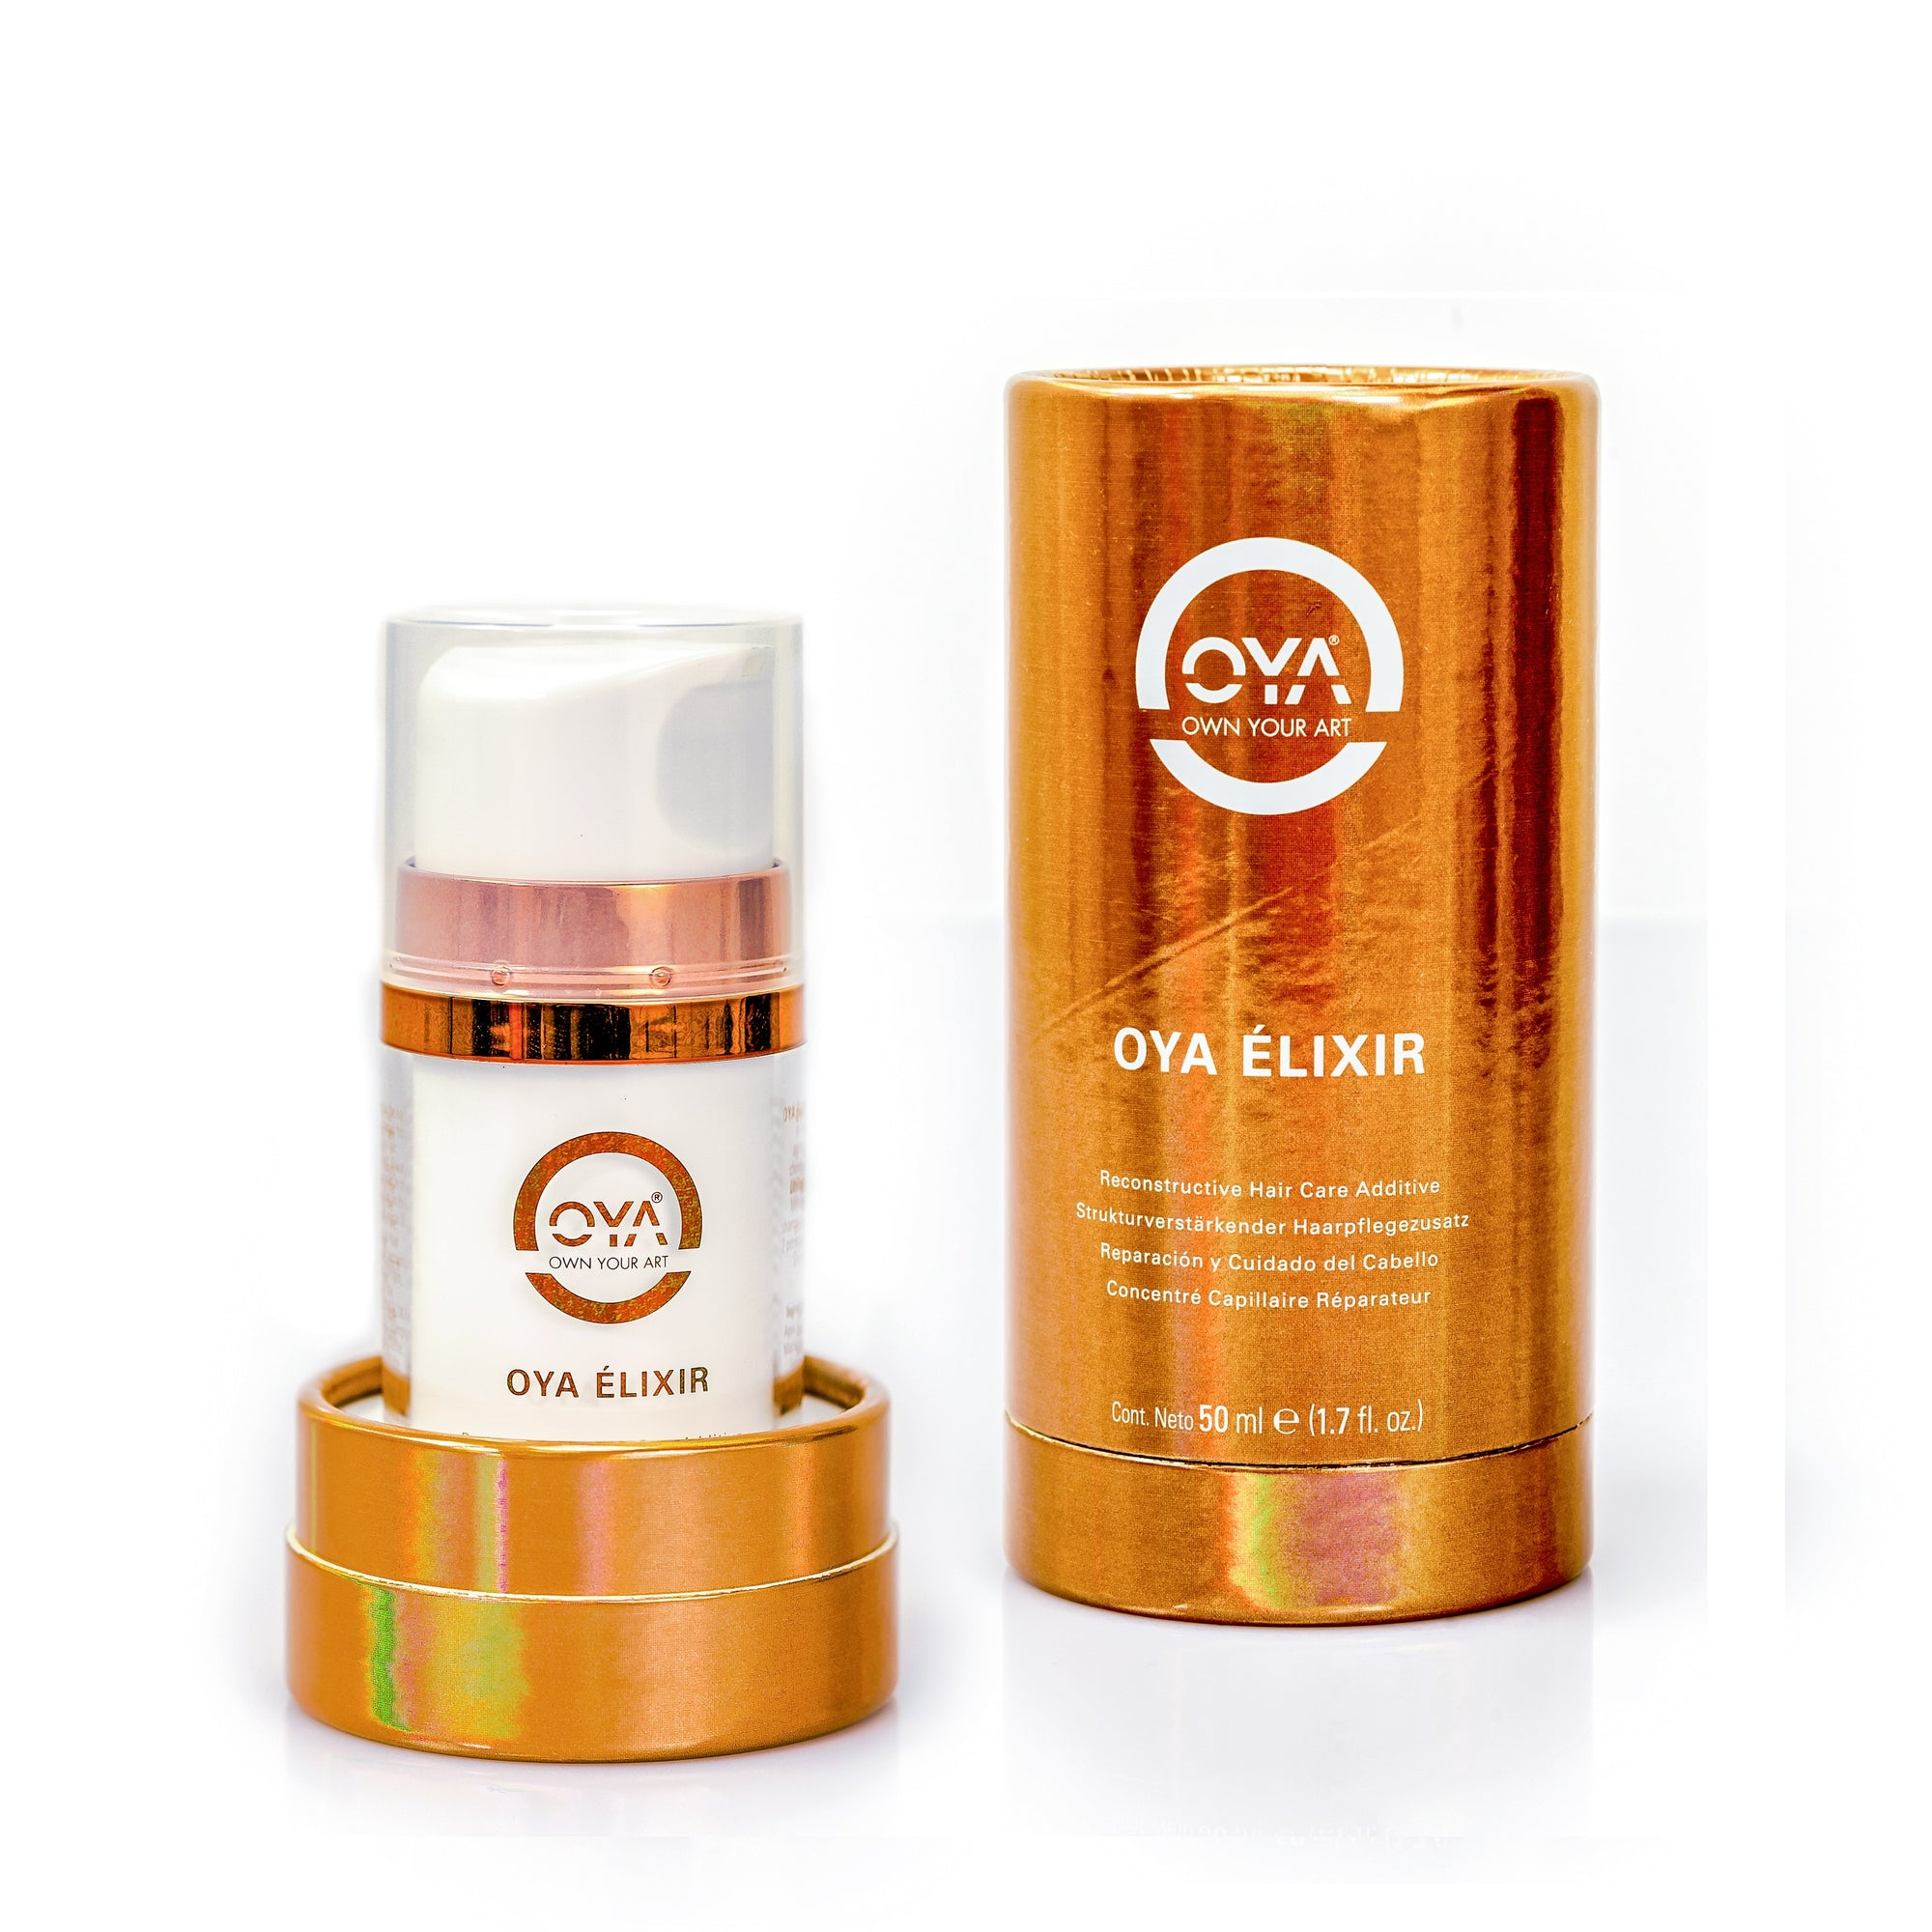 OYA Elixir (50 ml / 1.7 fl. oz.)